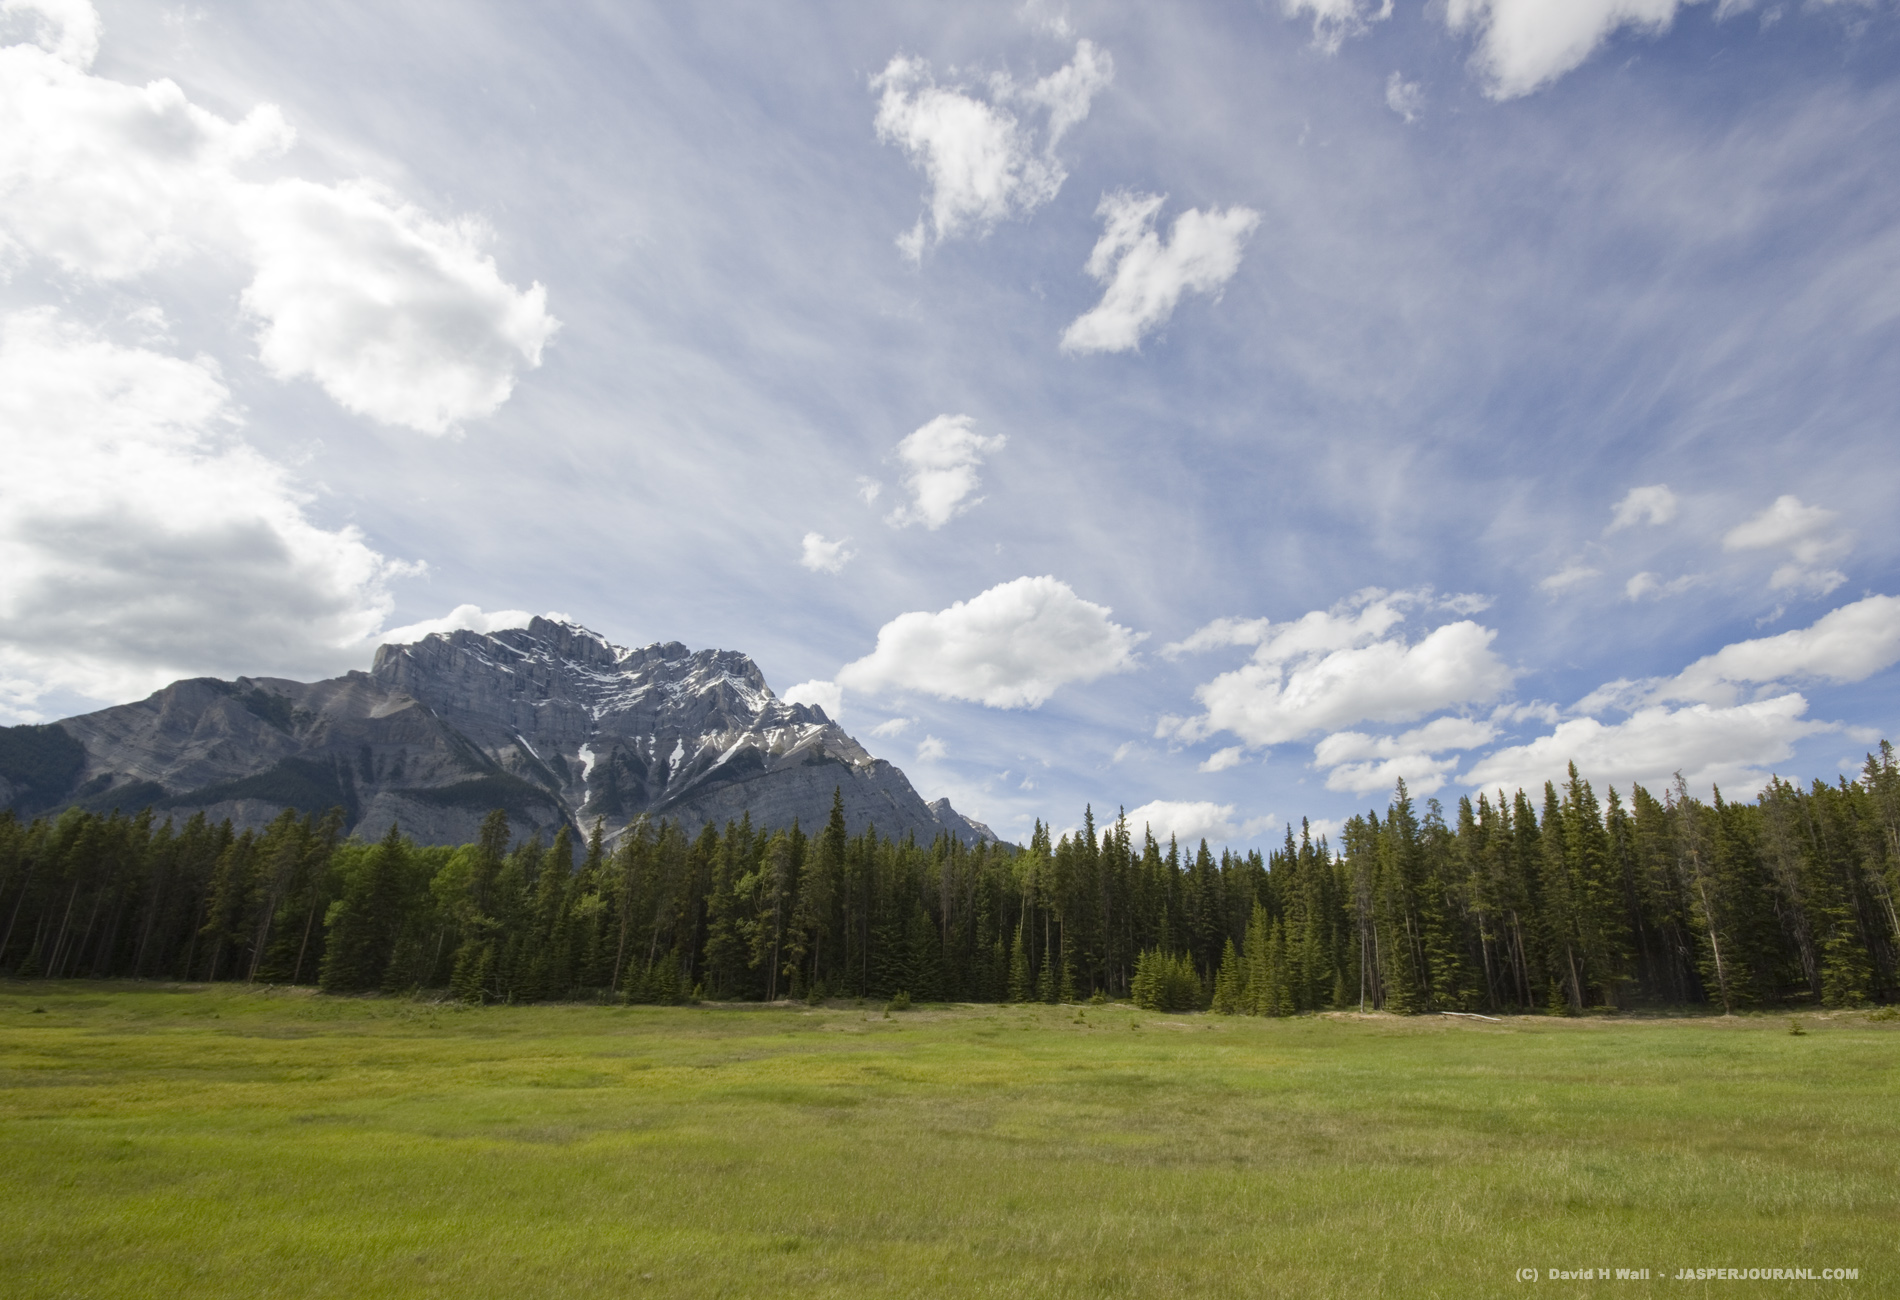 Desktop Wallpaper Banff National Park Jasper National Park 1900x1300